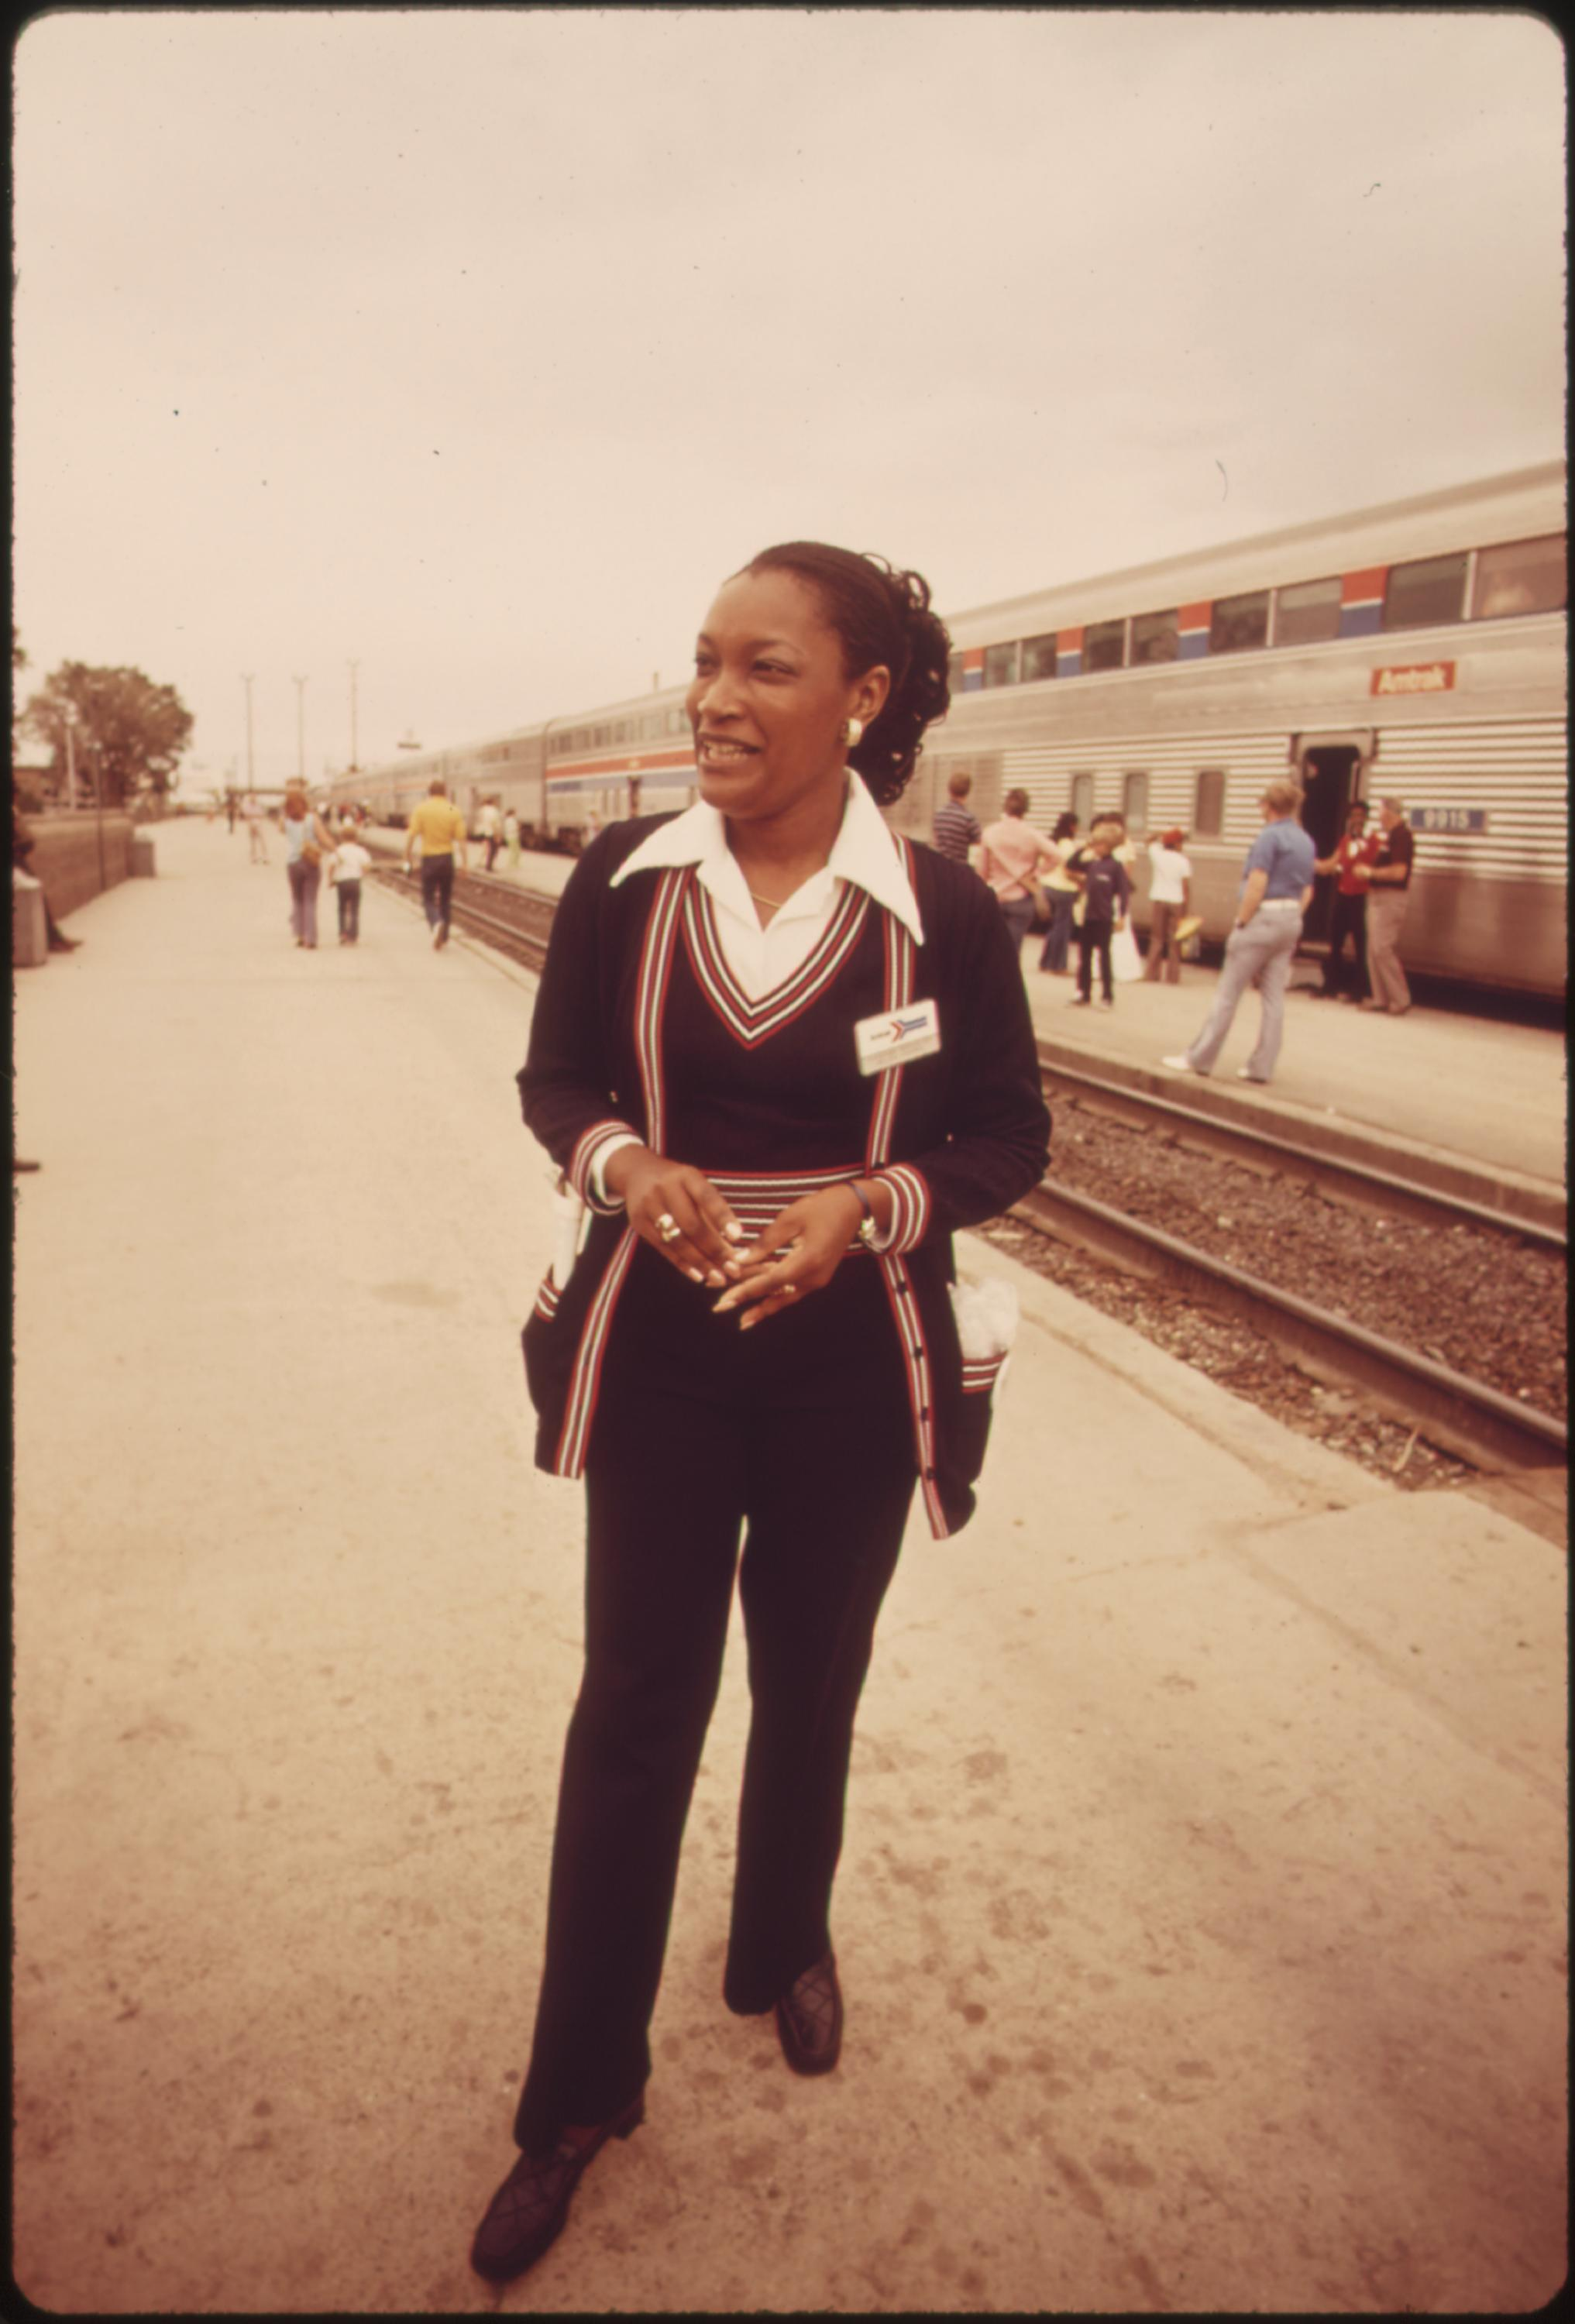 An Amtrak passenger service representative stands ready to answer questions concerning train travel, June 1974